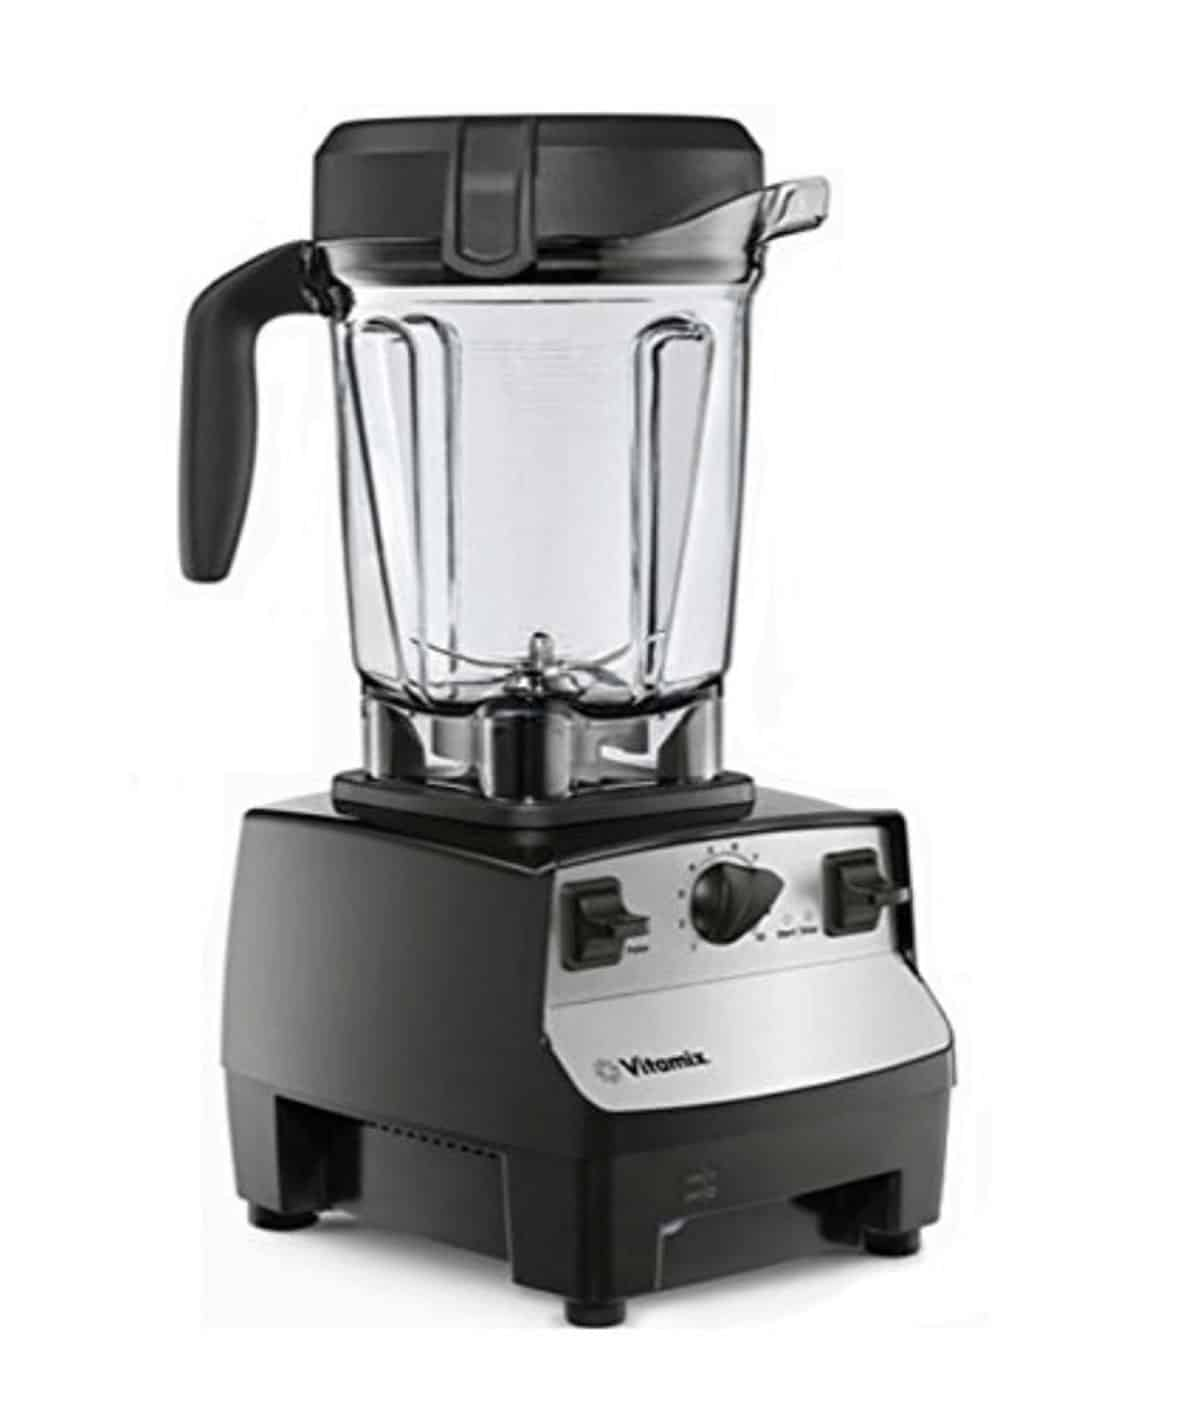 Vitamix blender.